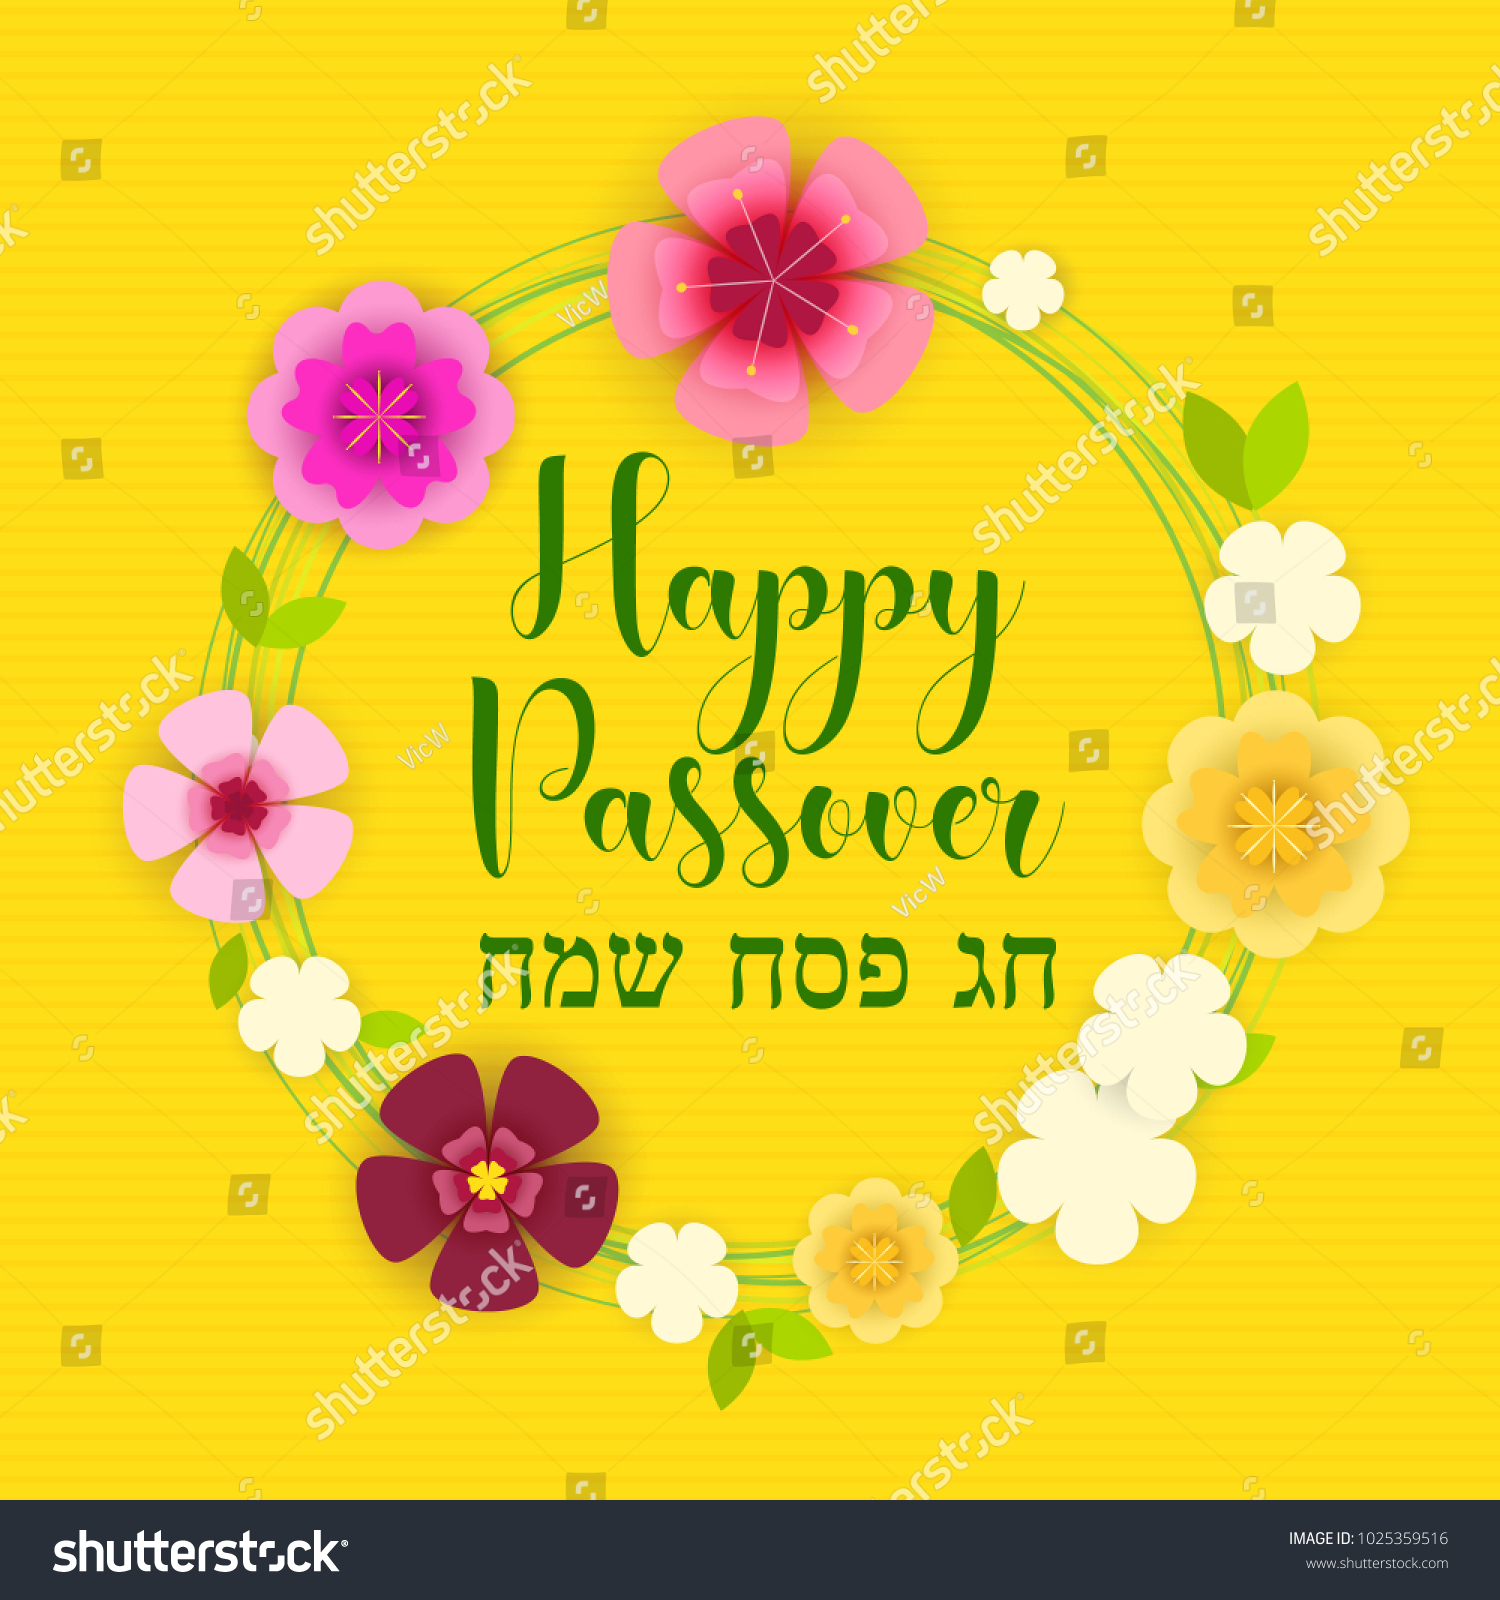 Happy passover happy passover on hebrew stock vector royalty free happy passover happy passover on hebrew greeting card vector illustration many m4hsunfo